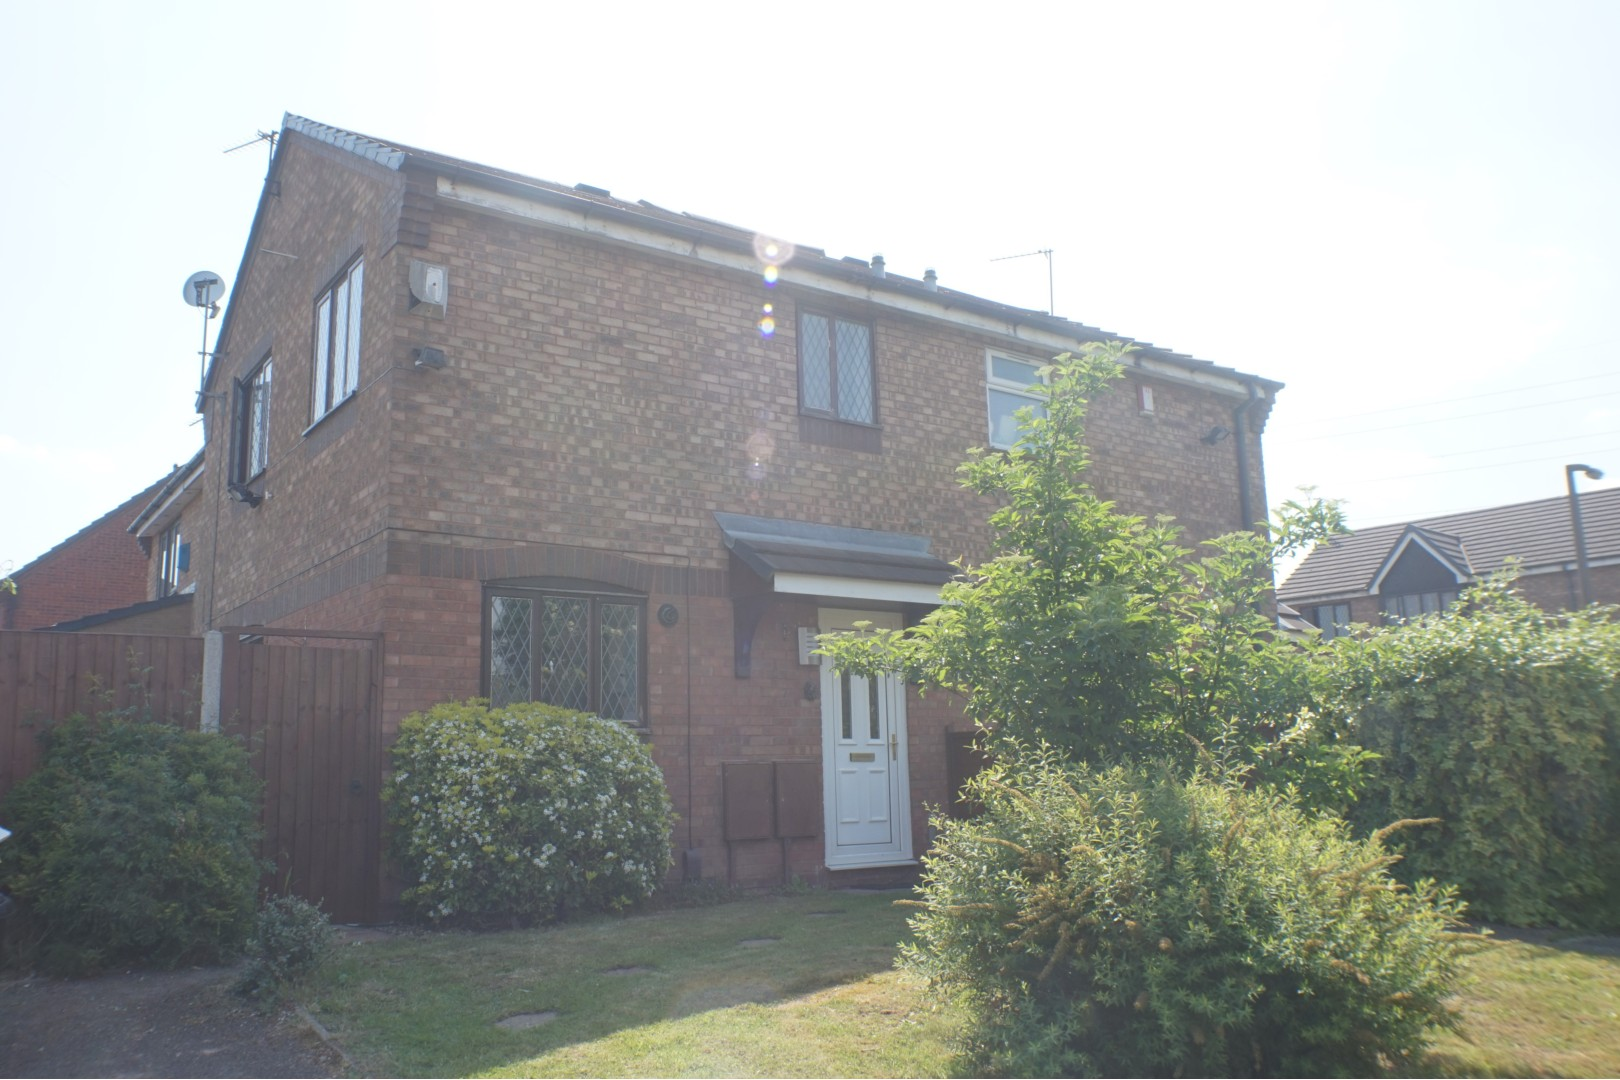 c506728f601 Today's Buy To Let Deal, 2 Bed Town House, Wolfsbane Drive, Walsall, WS5  With Yields Of 5.28%.